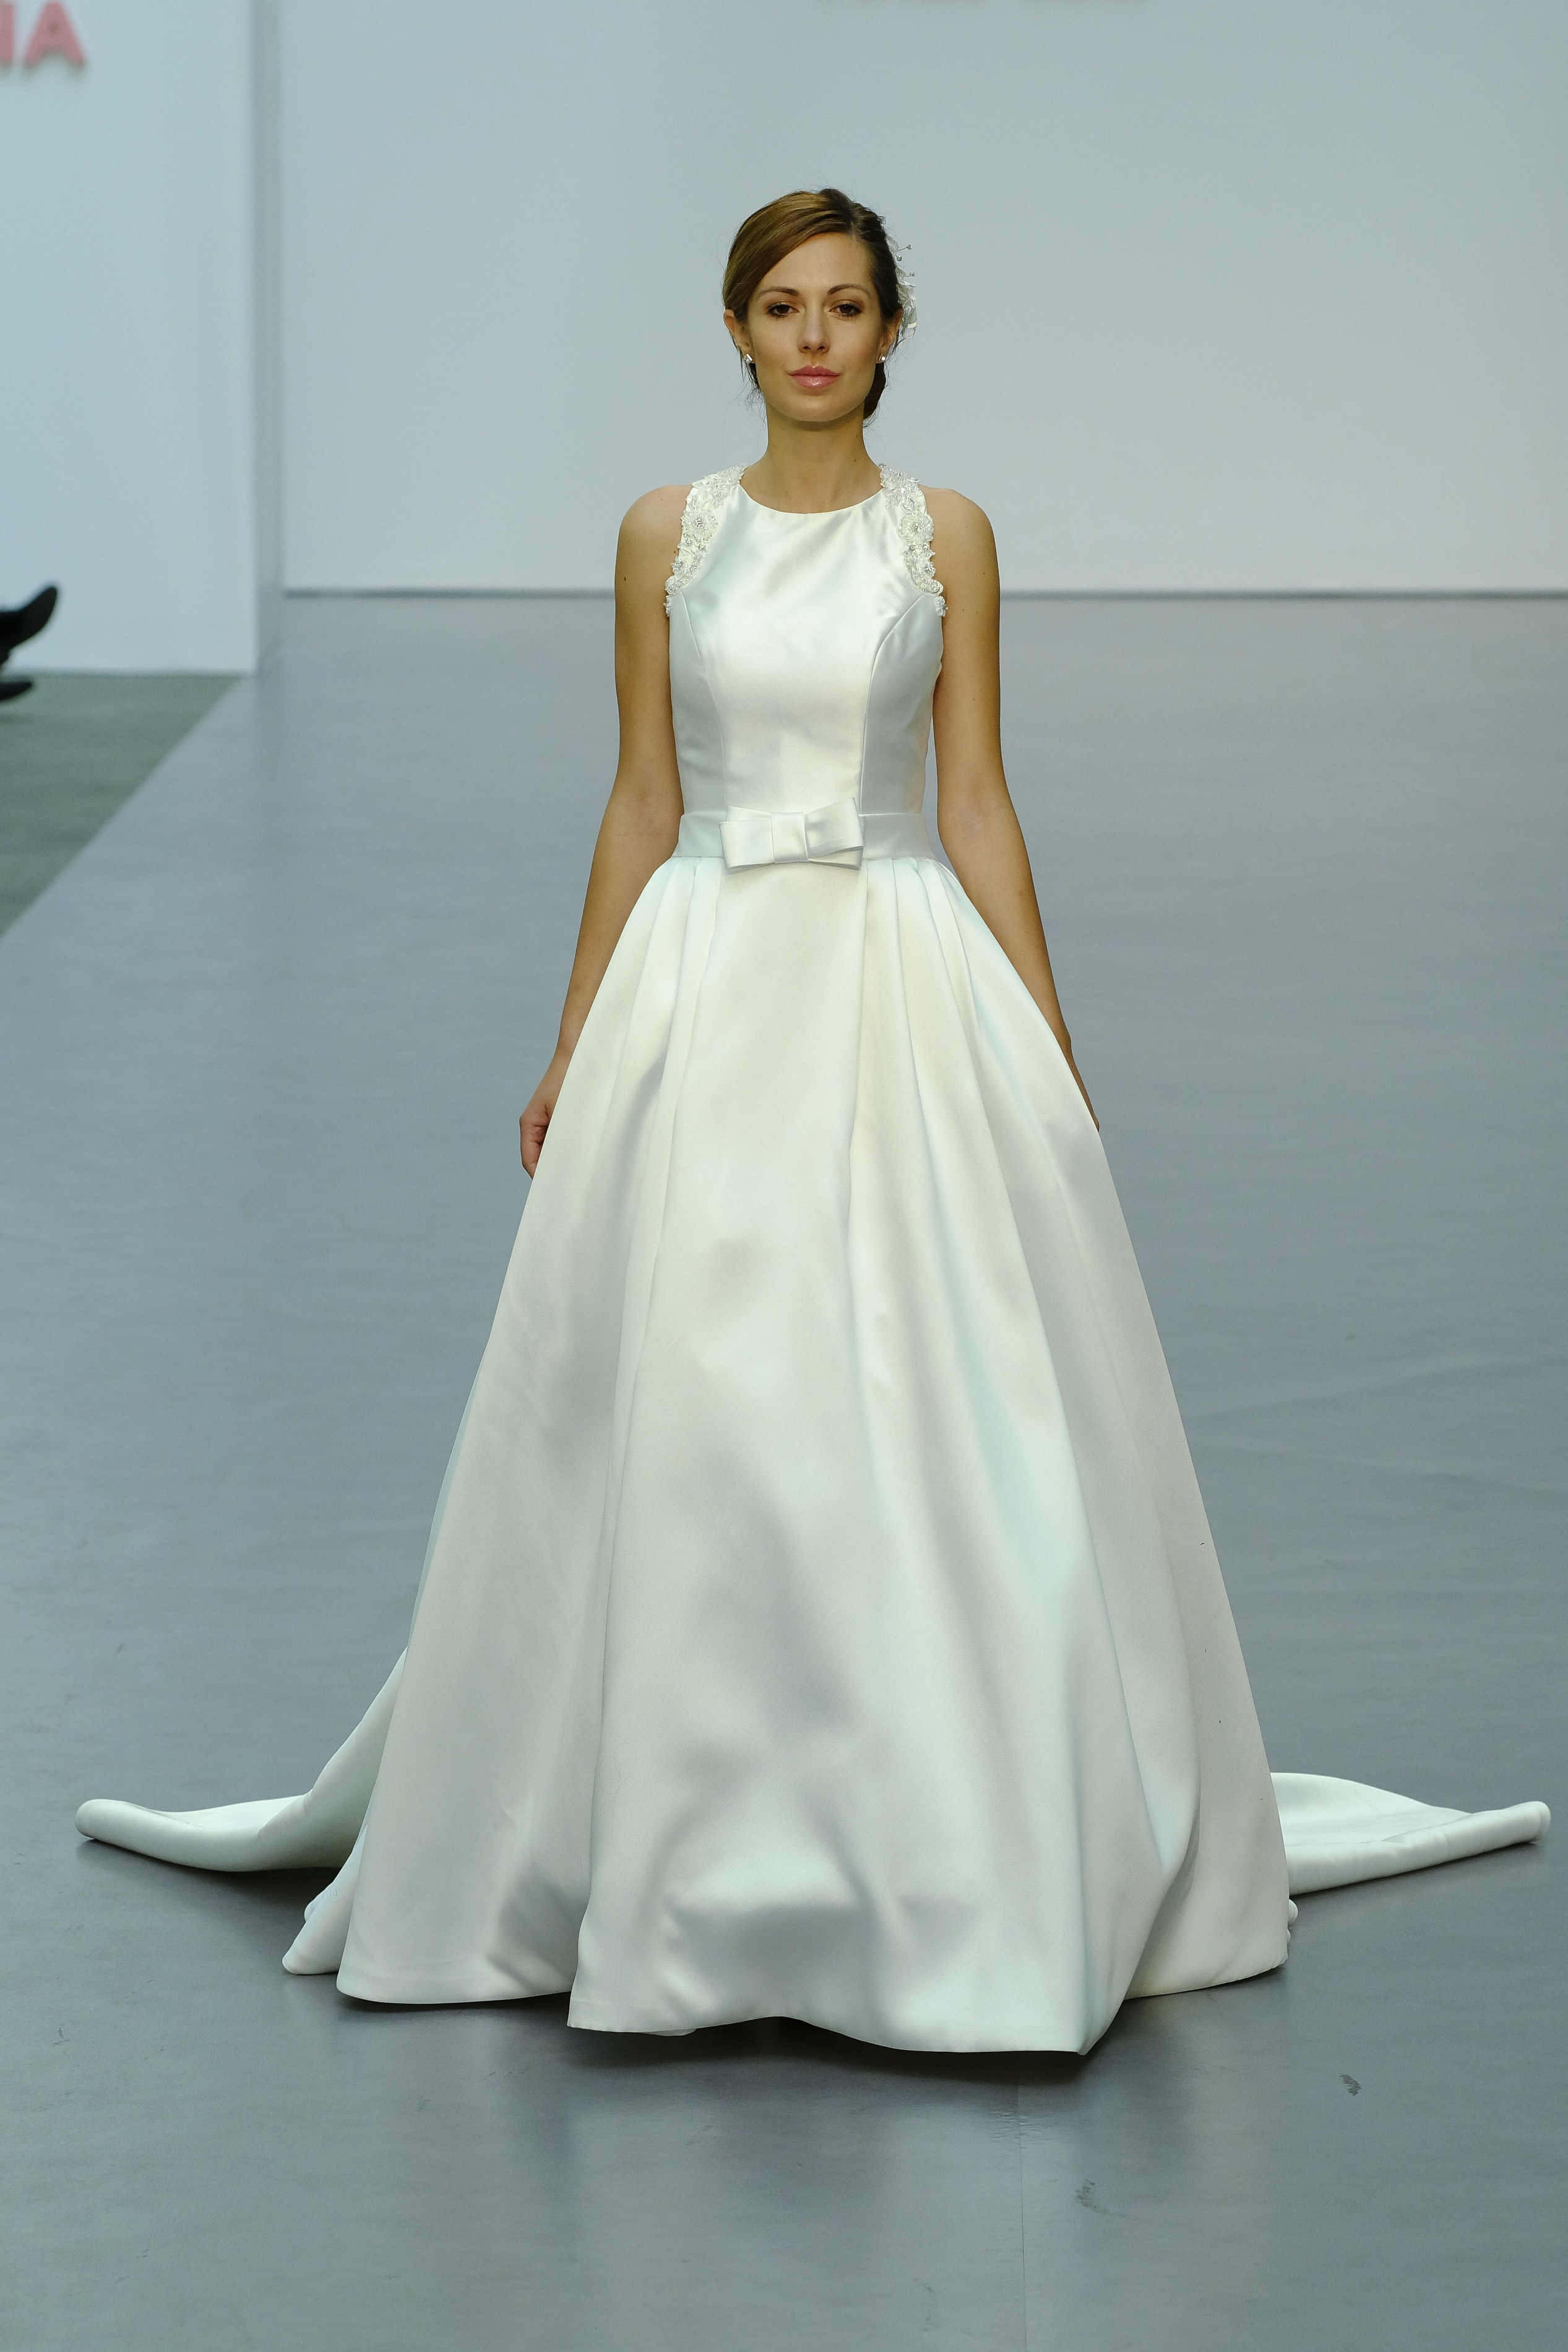 Wedding Dress Inspiration: 10 of the most beautiful dresses from ...